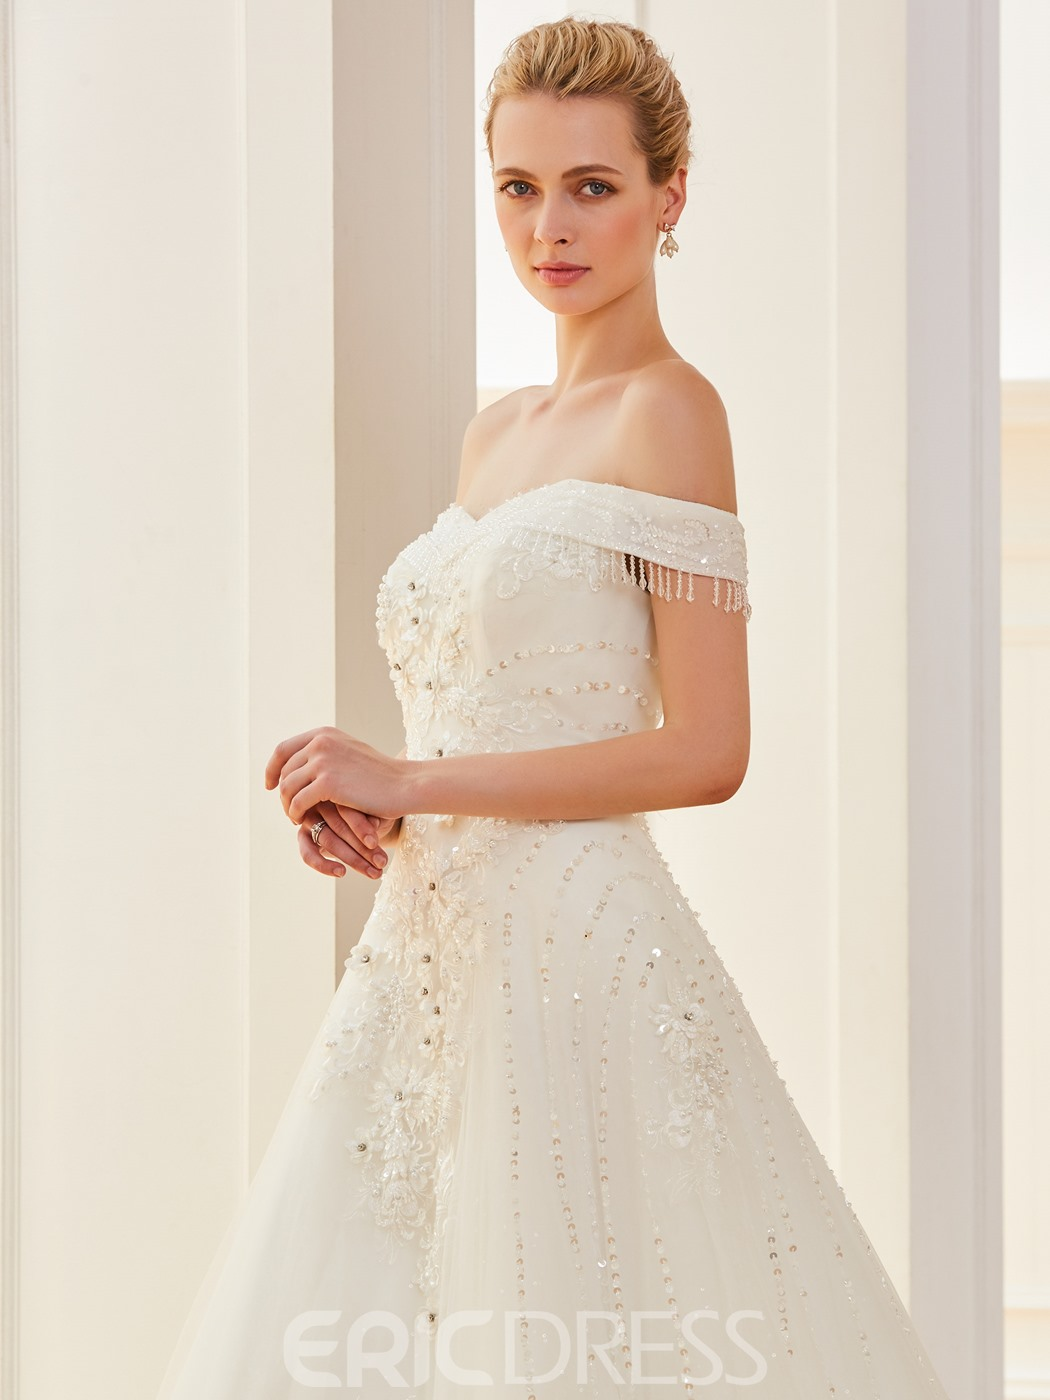 Ericdress Off The Shoulder Appliques Beaded A Line Wedding Dress